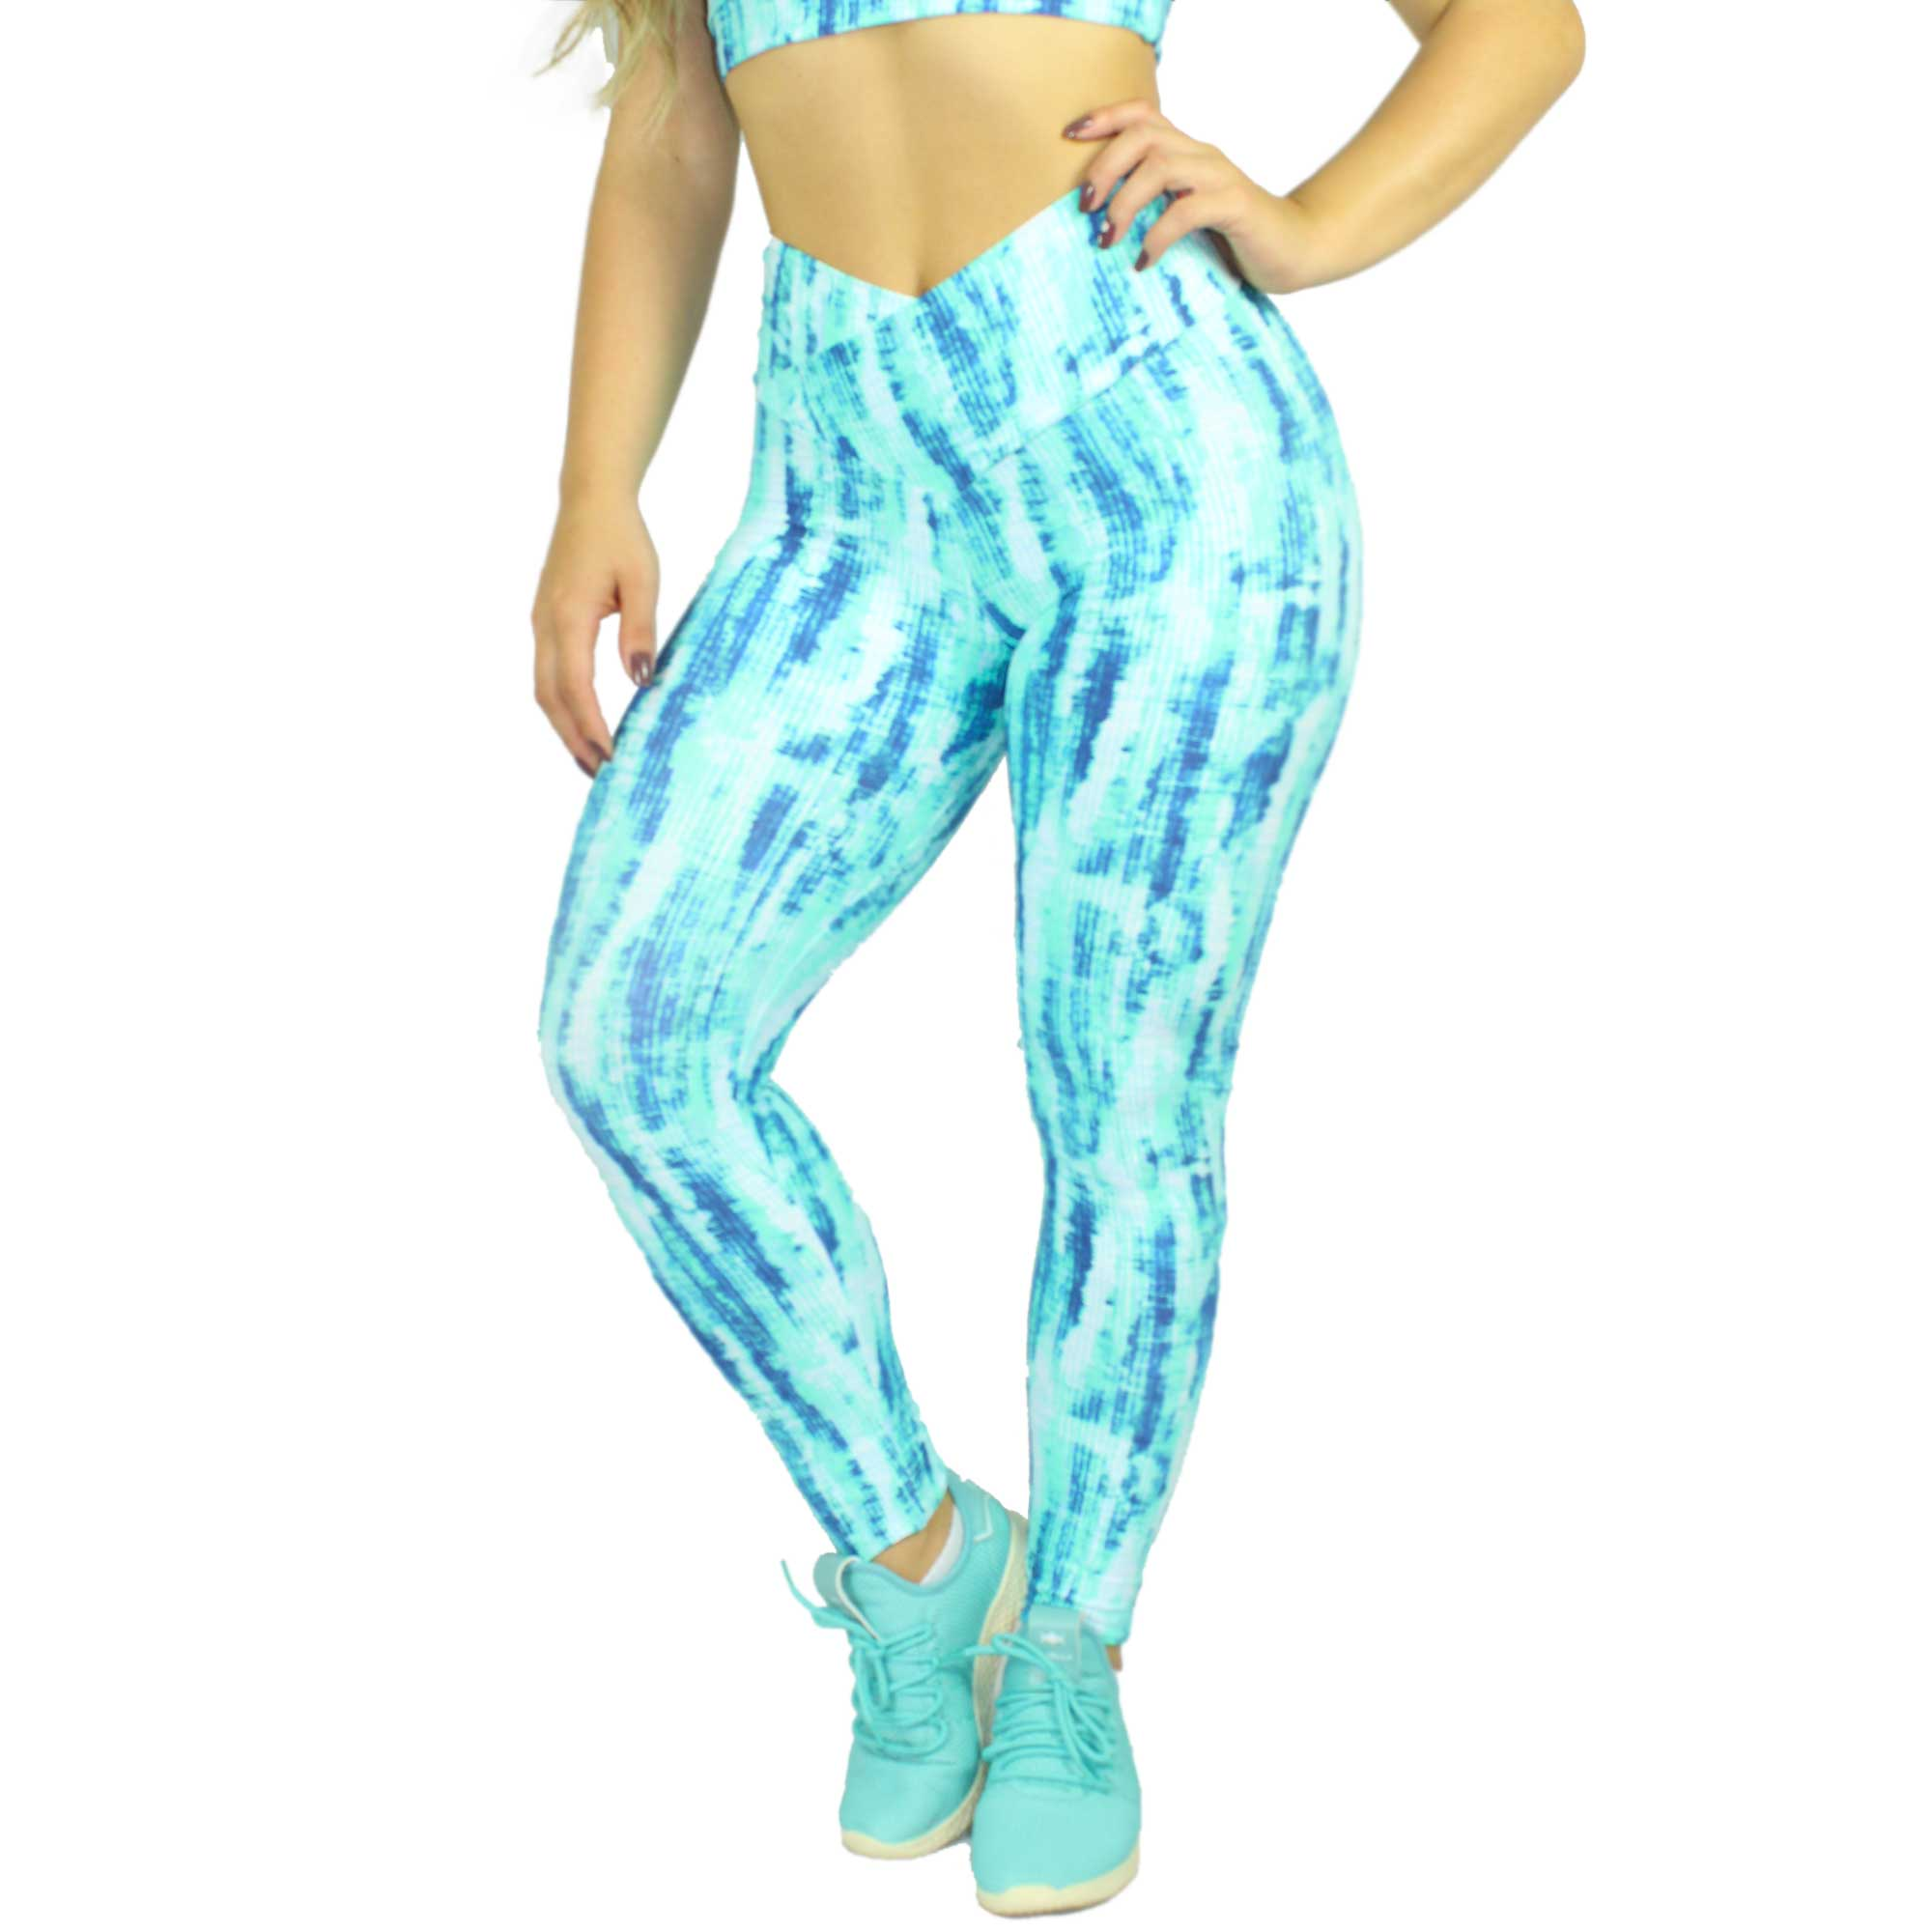 Legging Acqua  - Gracyanne Barbosa